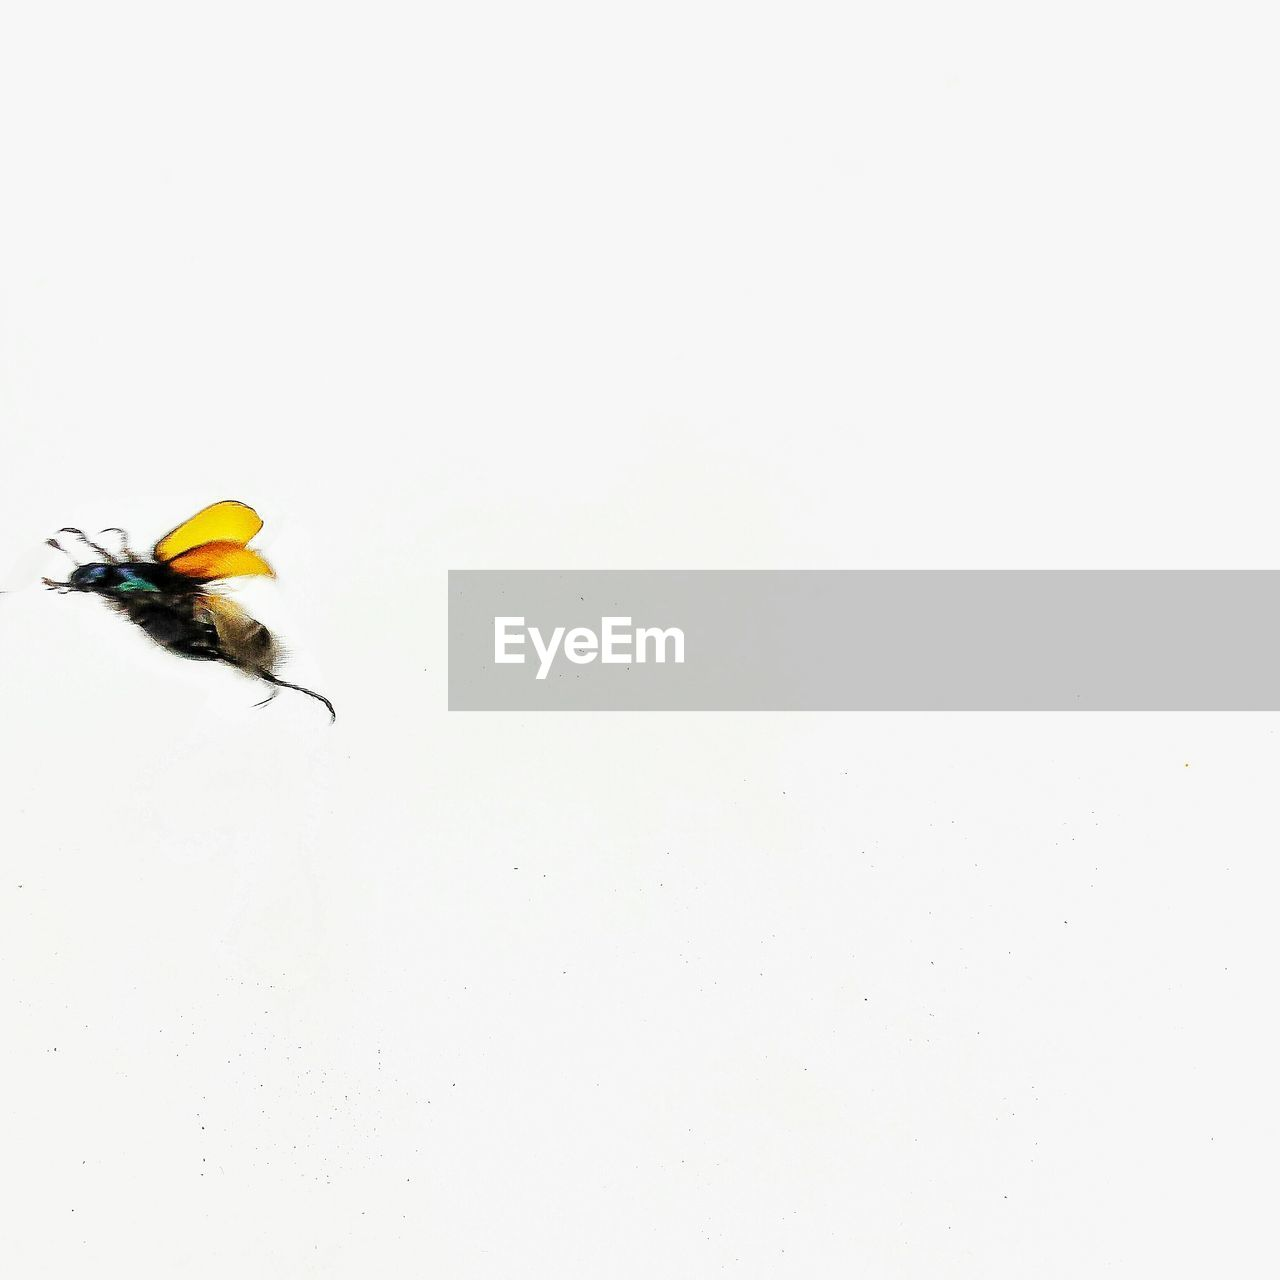 YELLOW INSECT FLYING OVER WHITE BACKGROUND